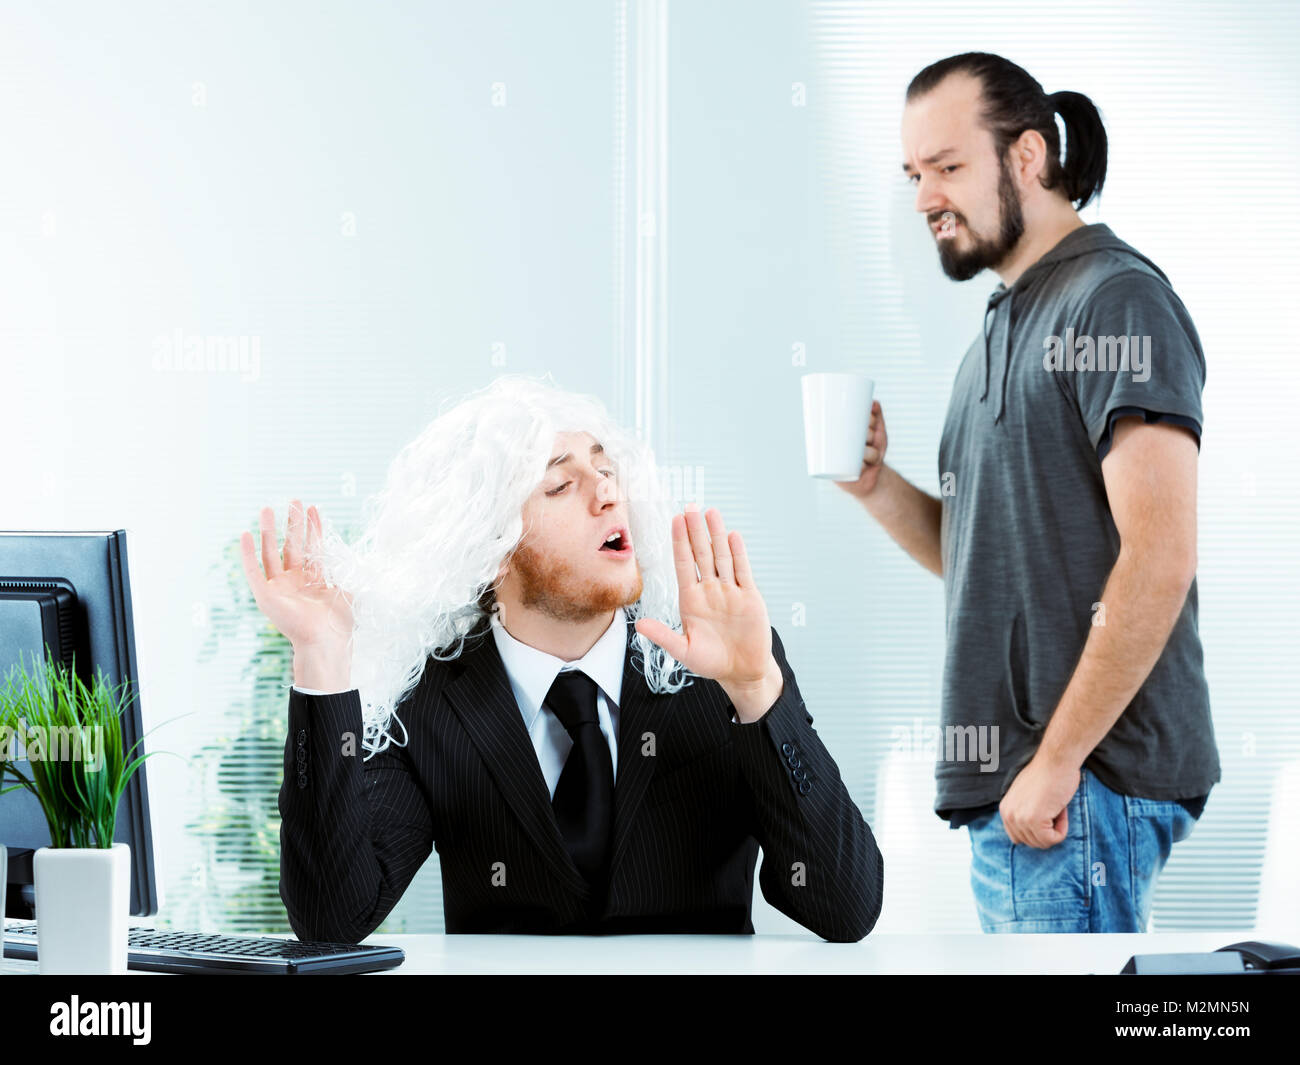 Affected narcissistic young businessman wearing a suit and white wig in the office gesturing with his hands watched - Stock Image